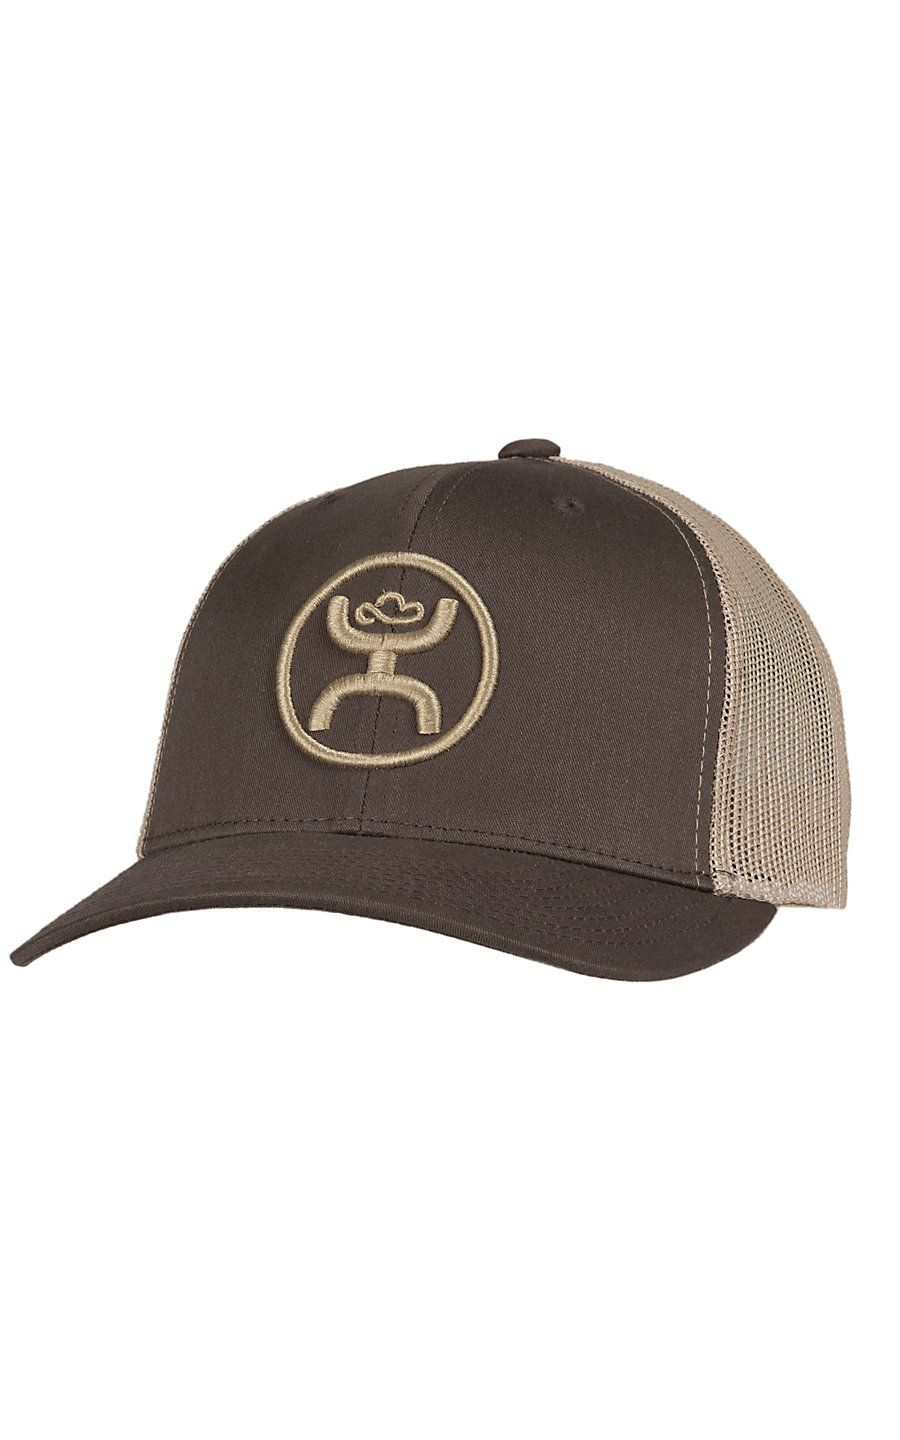 HOOey Men s Cody Ohl Brown with Tan Logo   Mesh Back Cap  54e04aa786bf